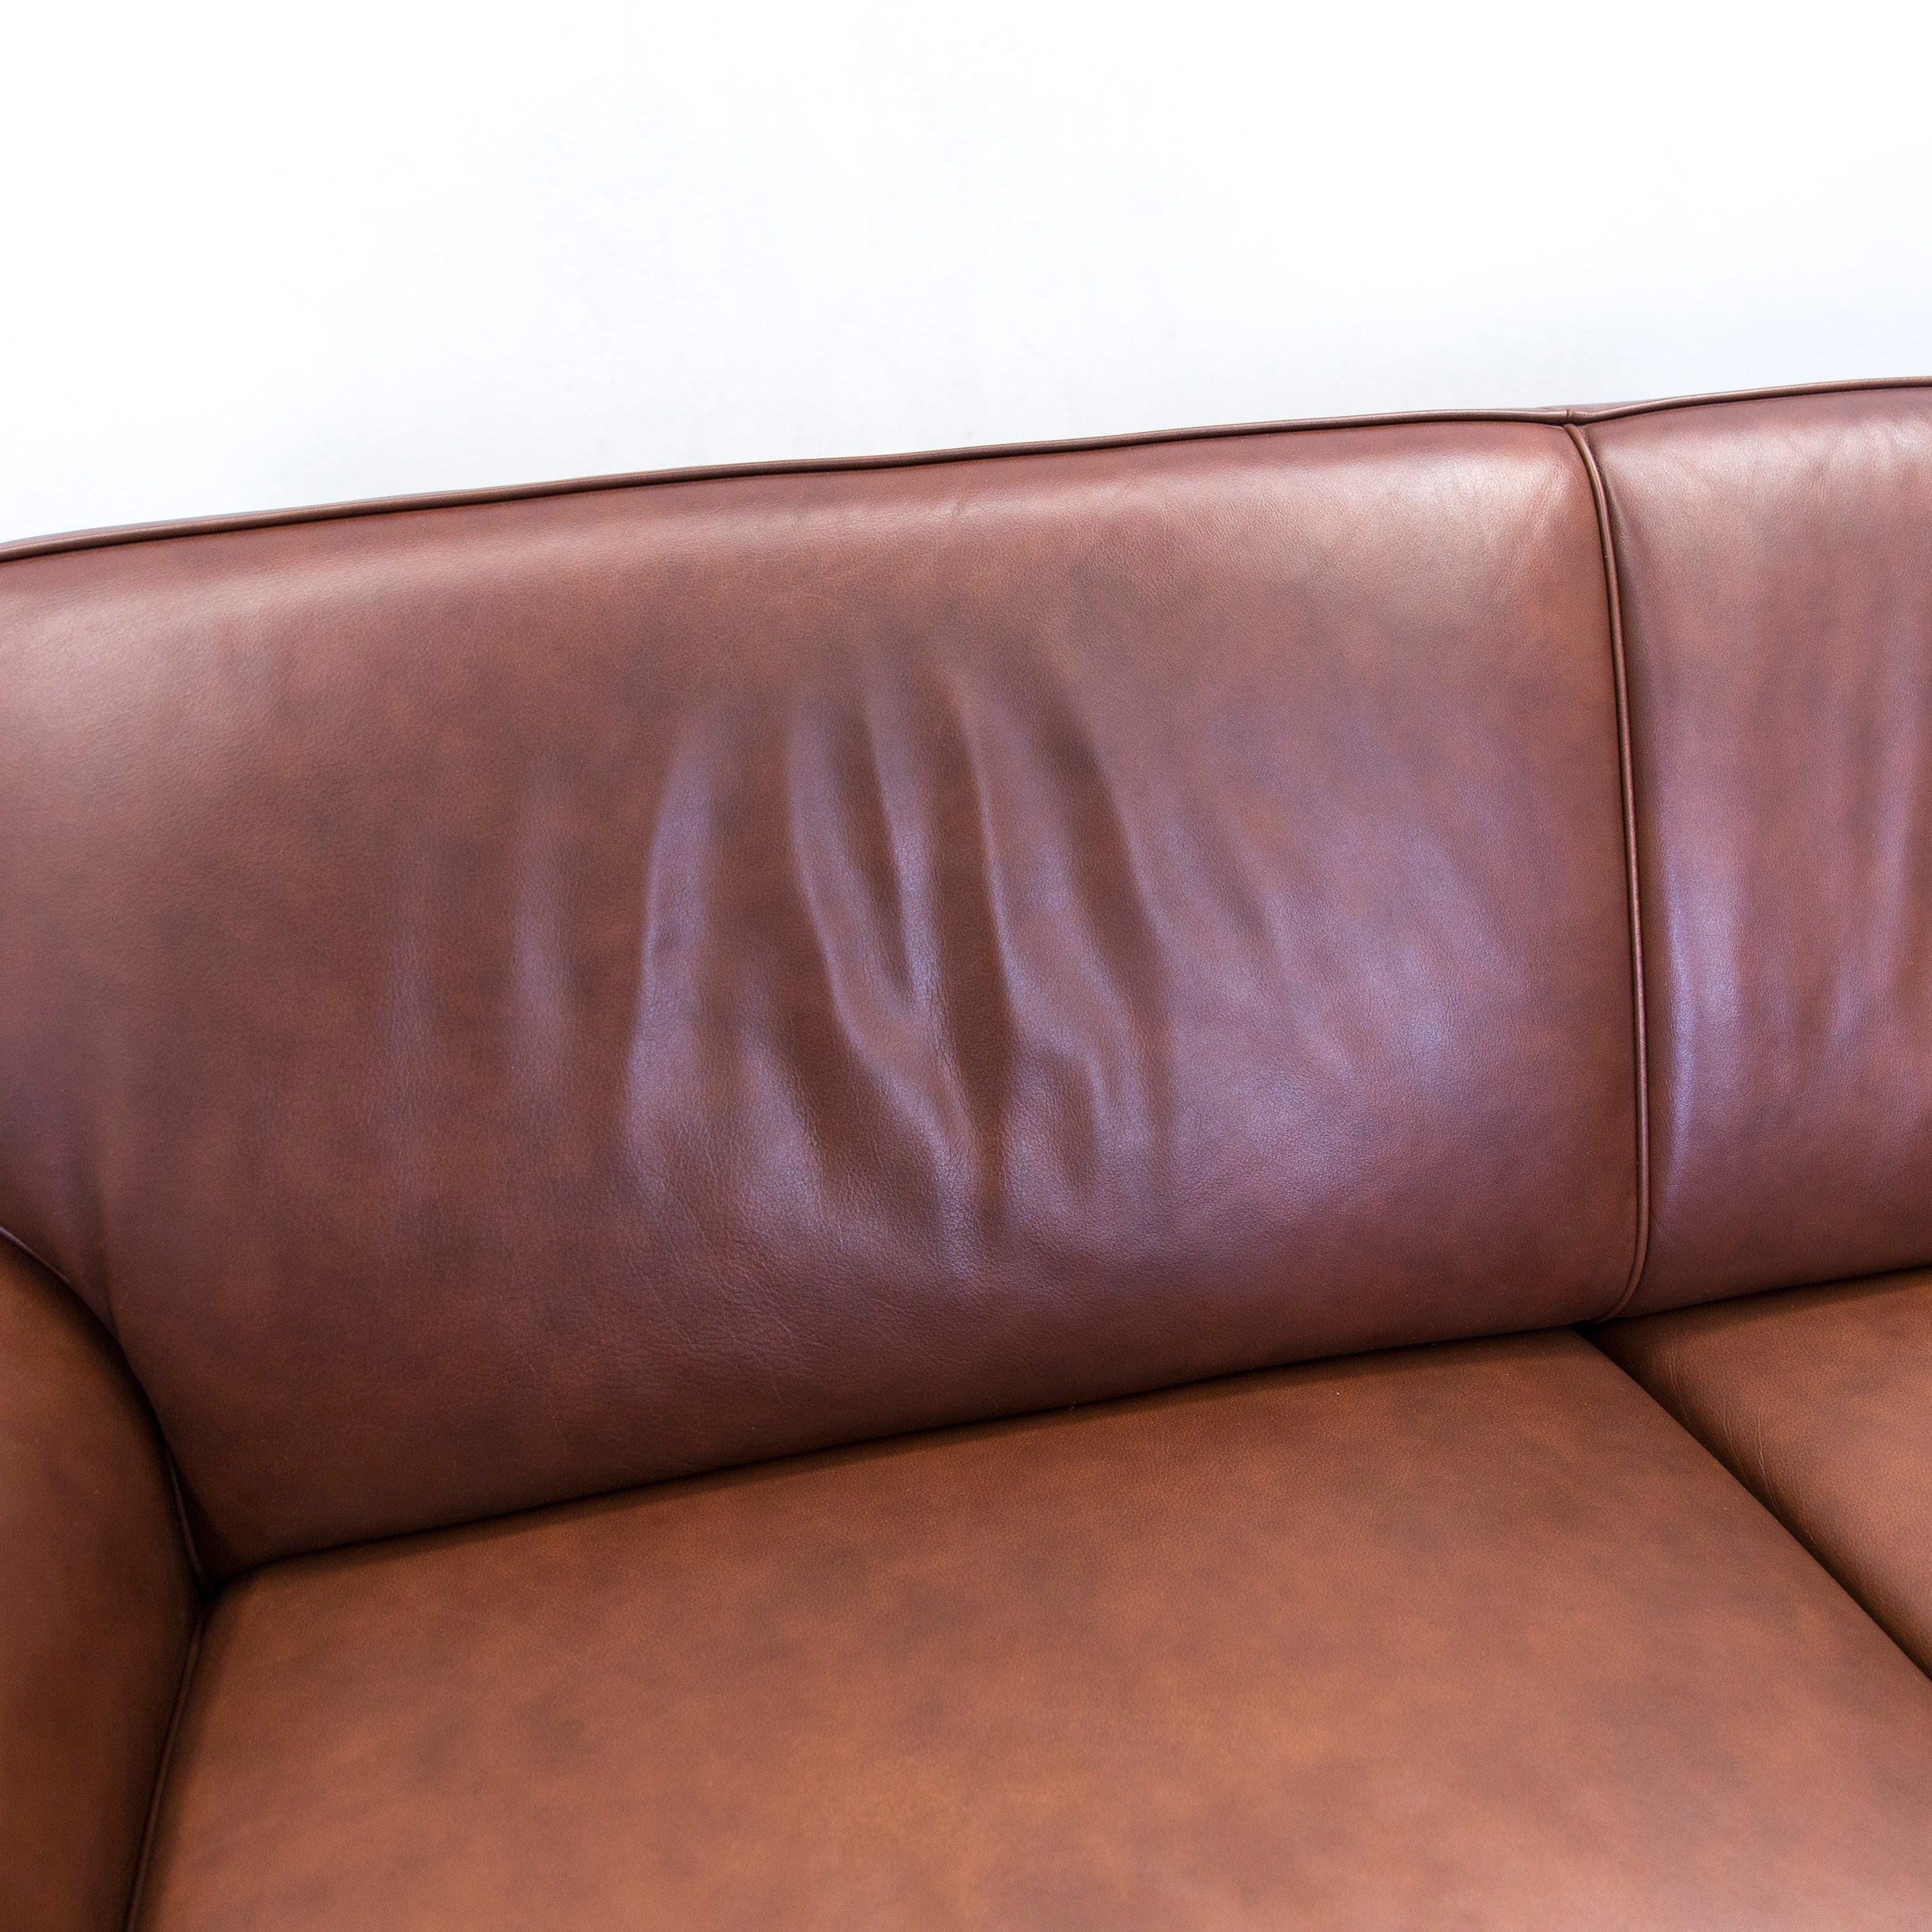 Beeindruckend Couch Leder Braun Referenz Von Gepade Akad´or Designer Sofa Leather Brown Two-seat